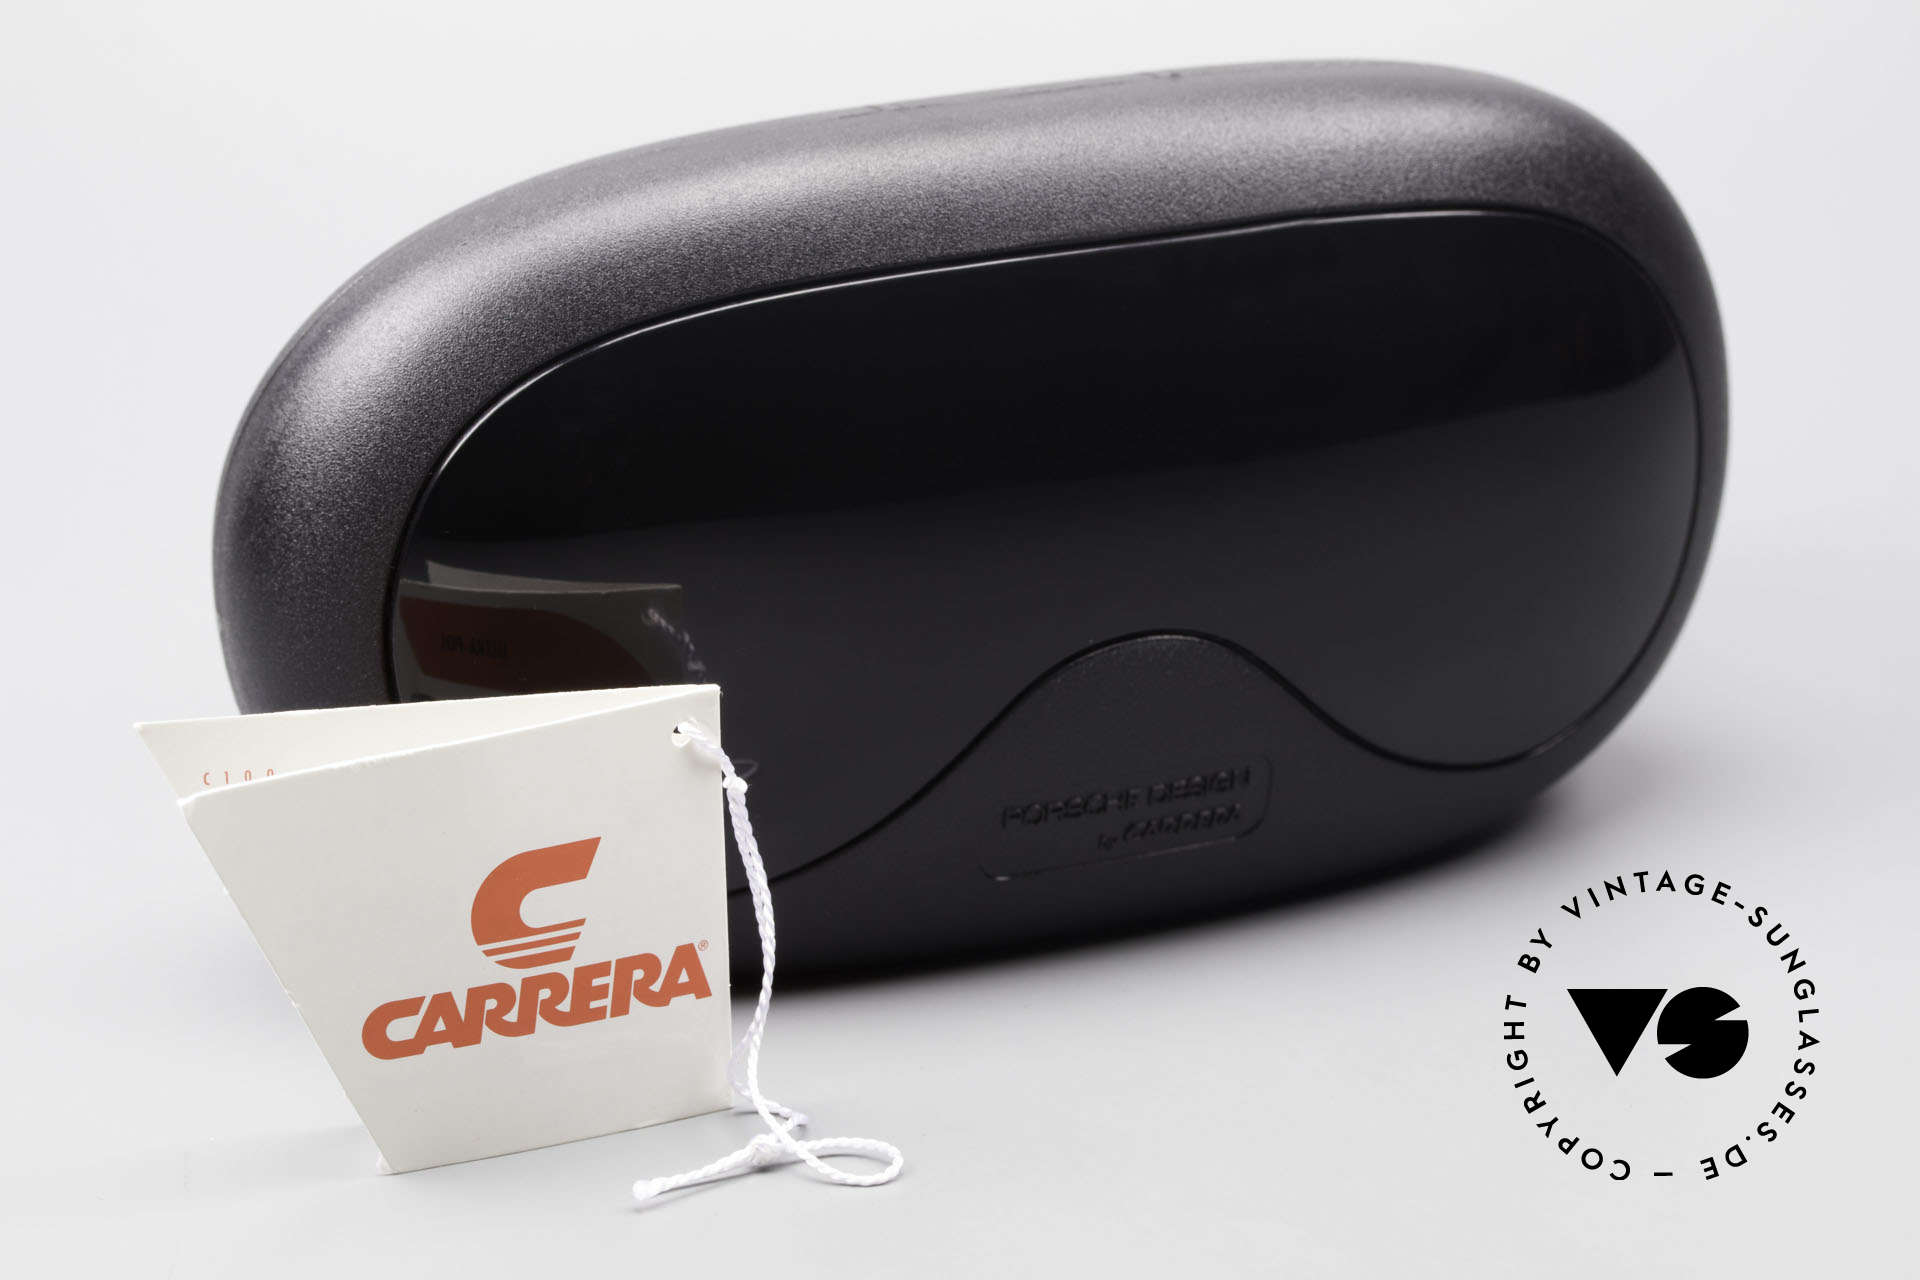 Carrera 5512 Most Wanted Carrera 5512, Size: large, Made for Men